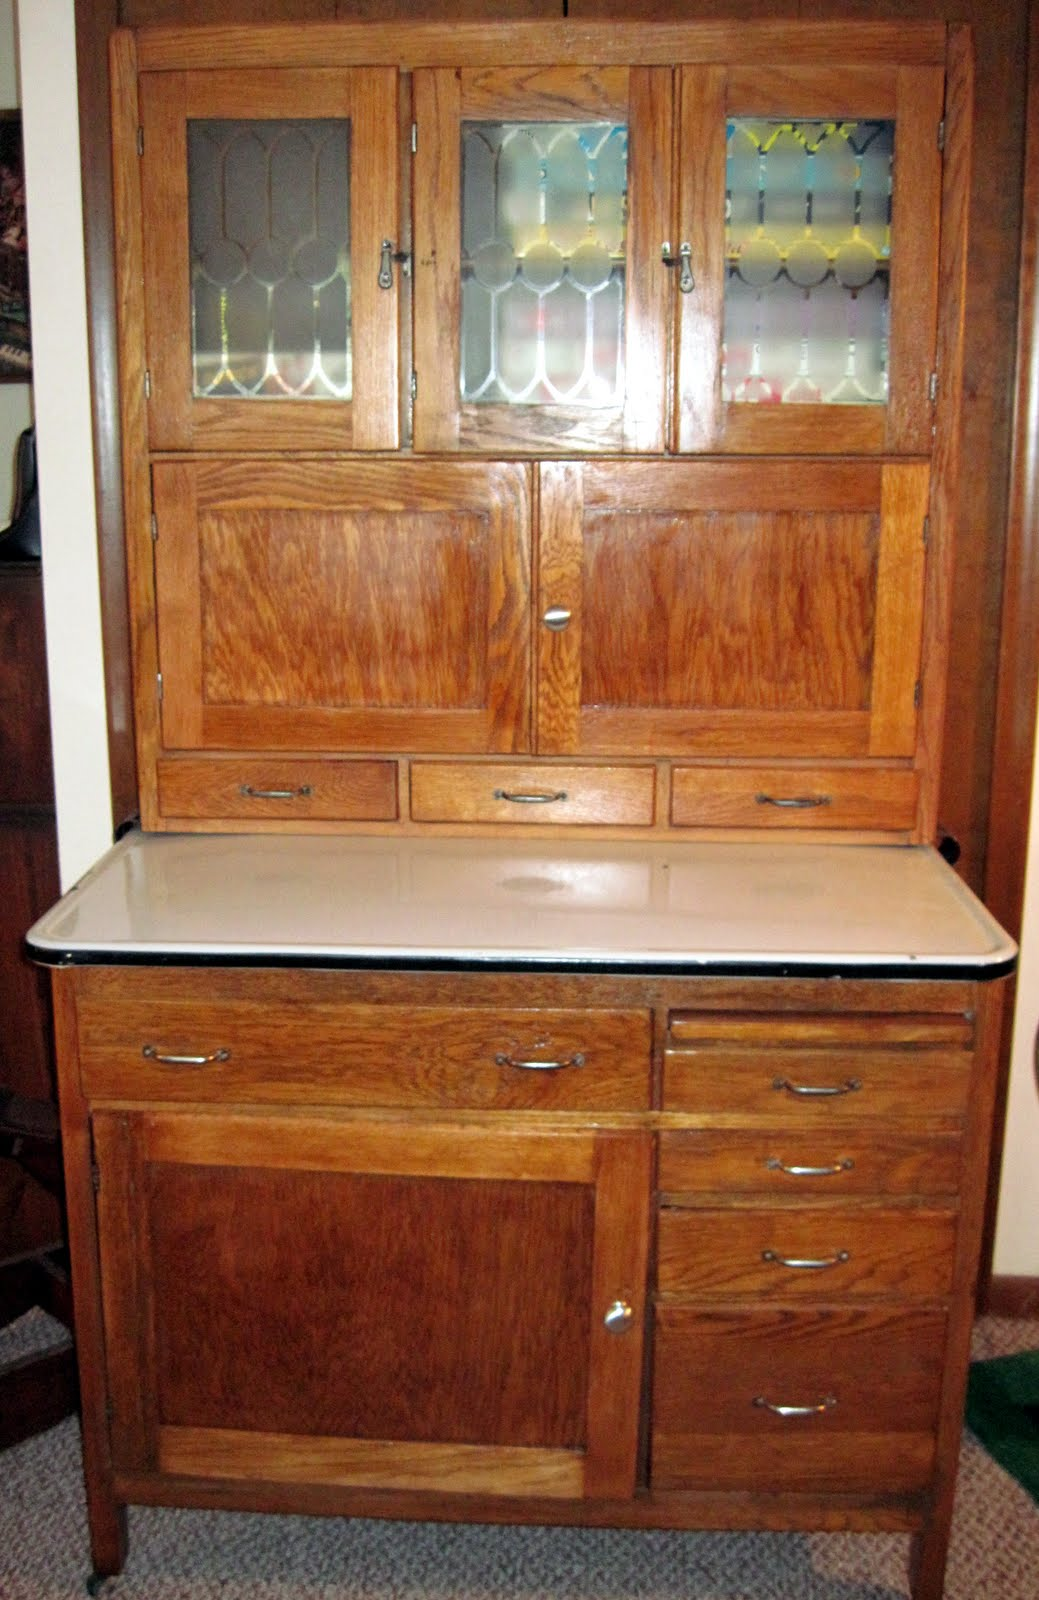 New Doors For Kitchen Cabinets Tracy S Toys And Some Other Stuff 1916 Hoosier Cabinet